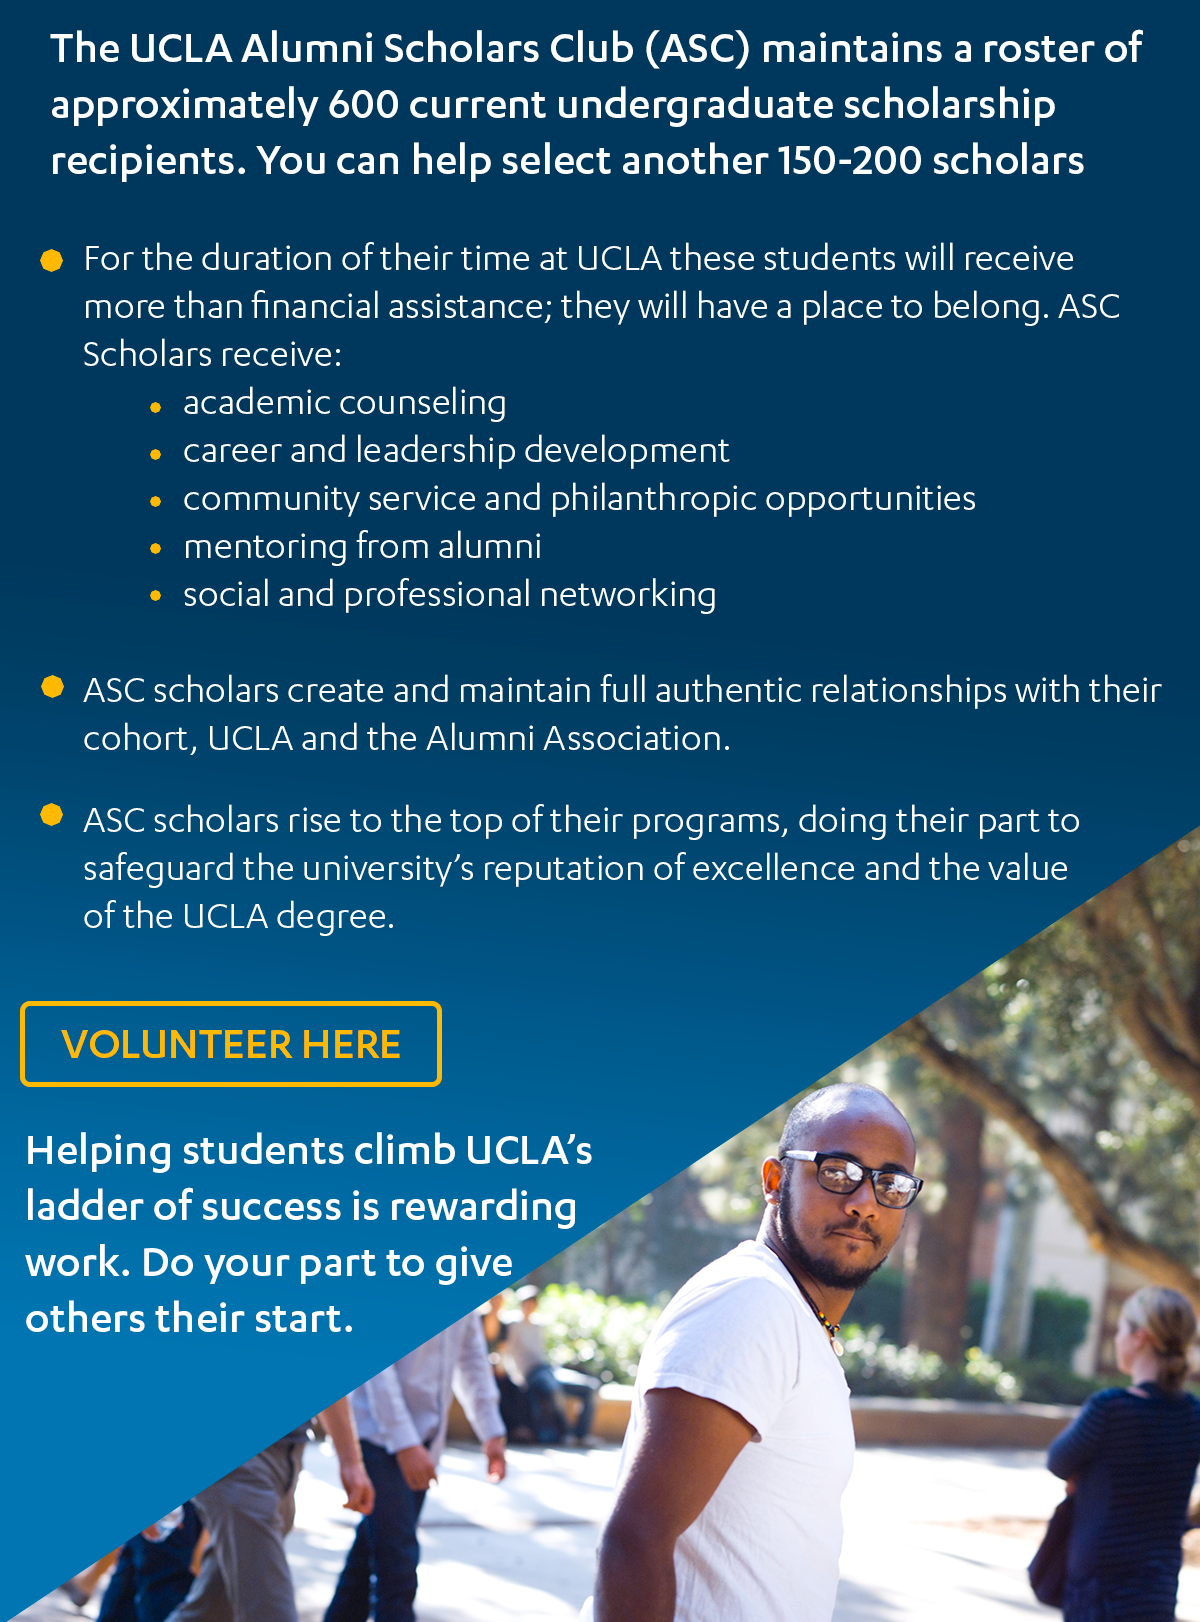 The UCLA Alumni Scholars Club (ASC) maintains a roster of approximately 600 current undergraduate scholarship recipients. You can help select another 150-200 scholars.  • For the duration of their time at UCLA these students will receive more than financial assistance; they will have a place to belong. ASC Scholars receive:  o academic counseling o career and leadership development o community service and philanthropic opportunities  o mentoring from alumni o social and professional networking  • ASC scholars create and maintain full authentic relationships with their cohort, UCLA and the Alumni Association.   • ASC scholars rise to the top of their programs, doing their part to safeguard the university's reputation of excellence and the value of the UCLA degree.   Helping students climb UCLA's ladder of success is rewarding work.  Do your part to give others their start.